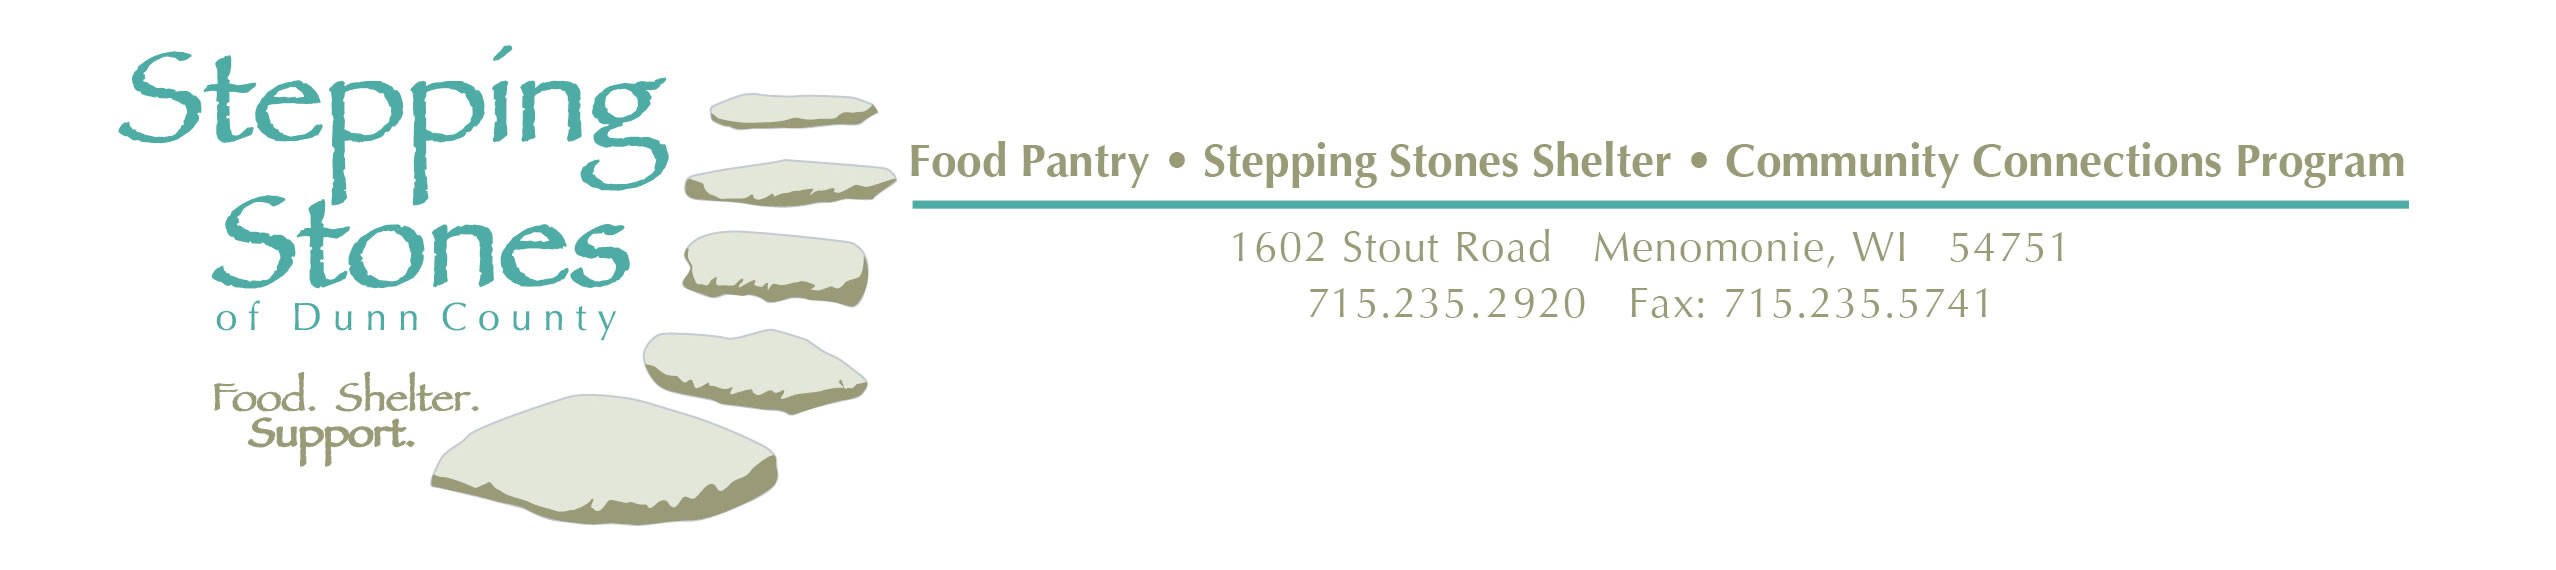 Stepping Stones Header